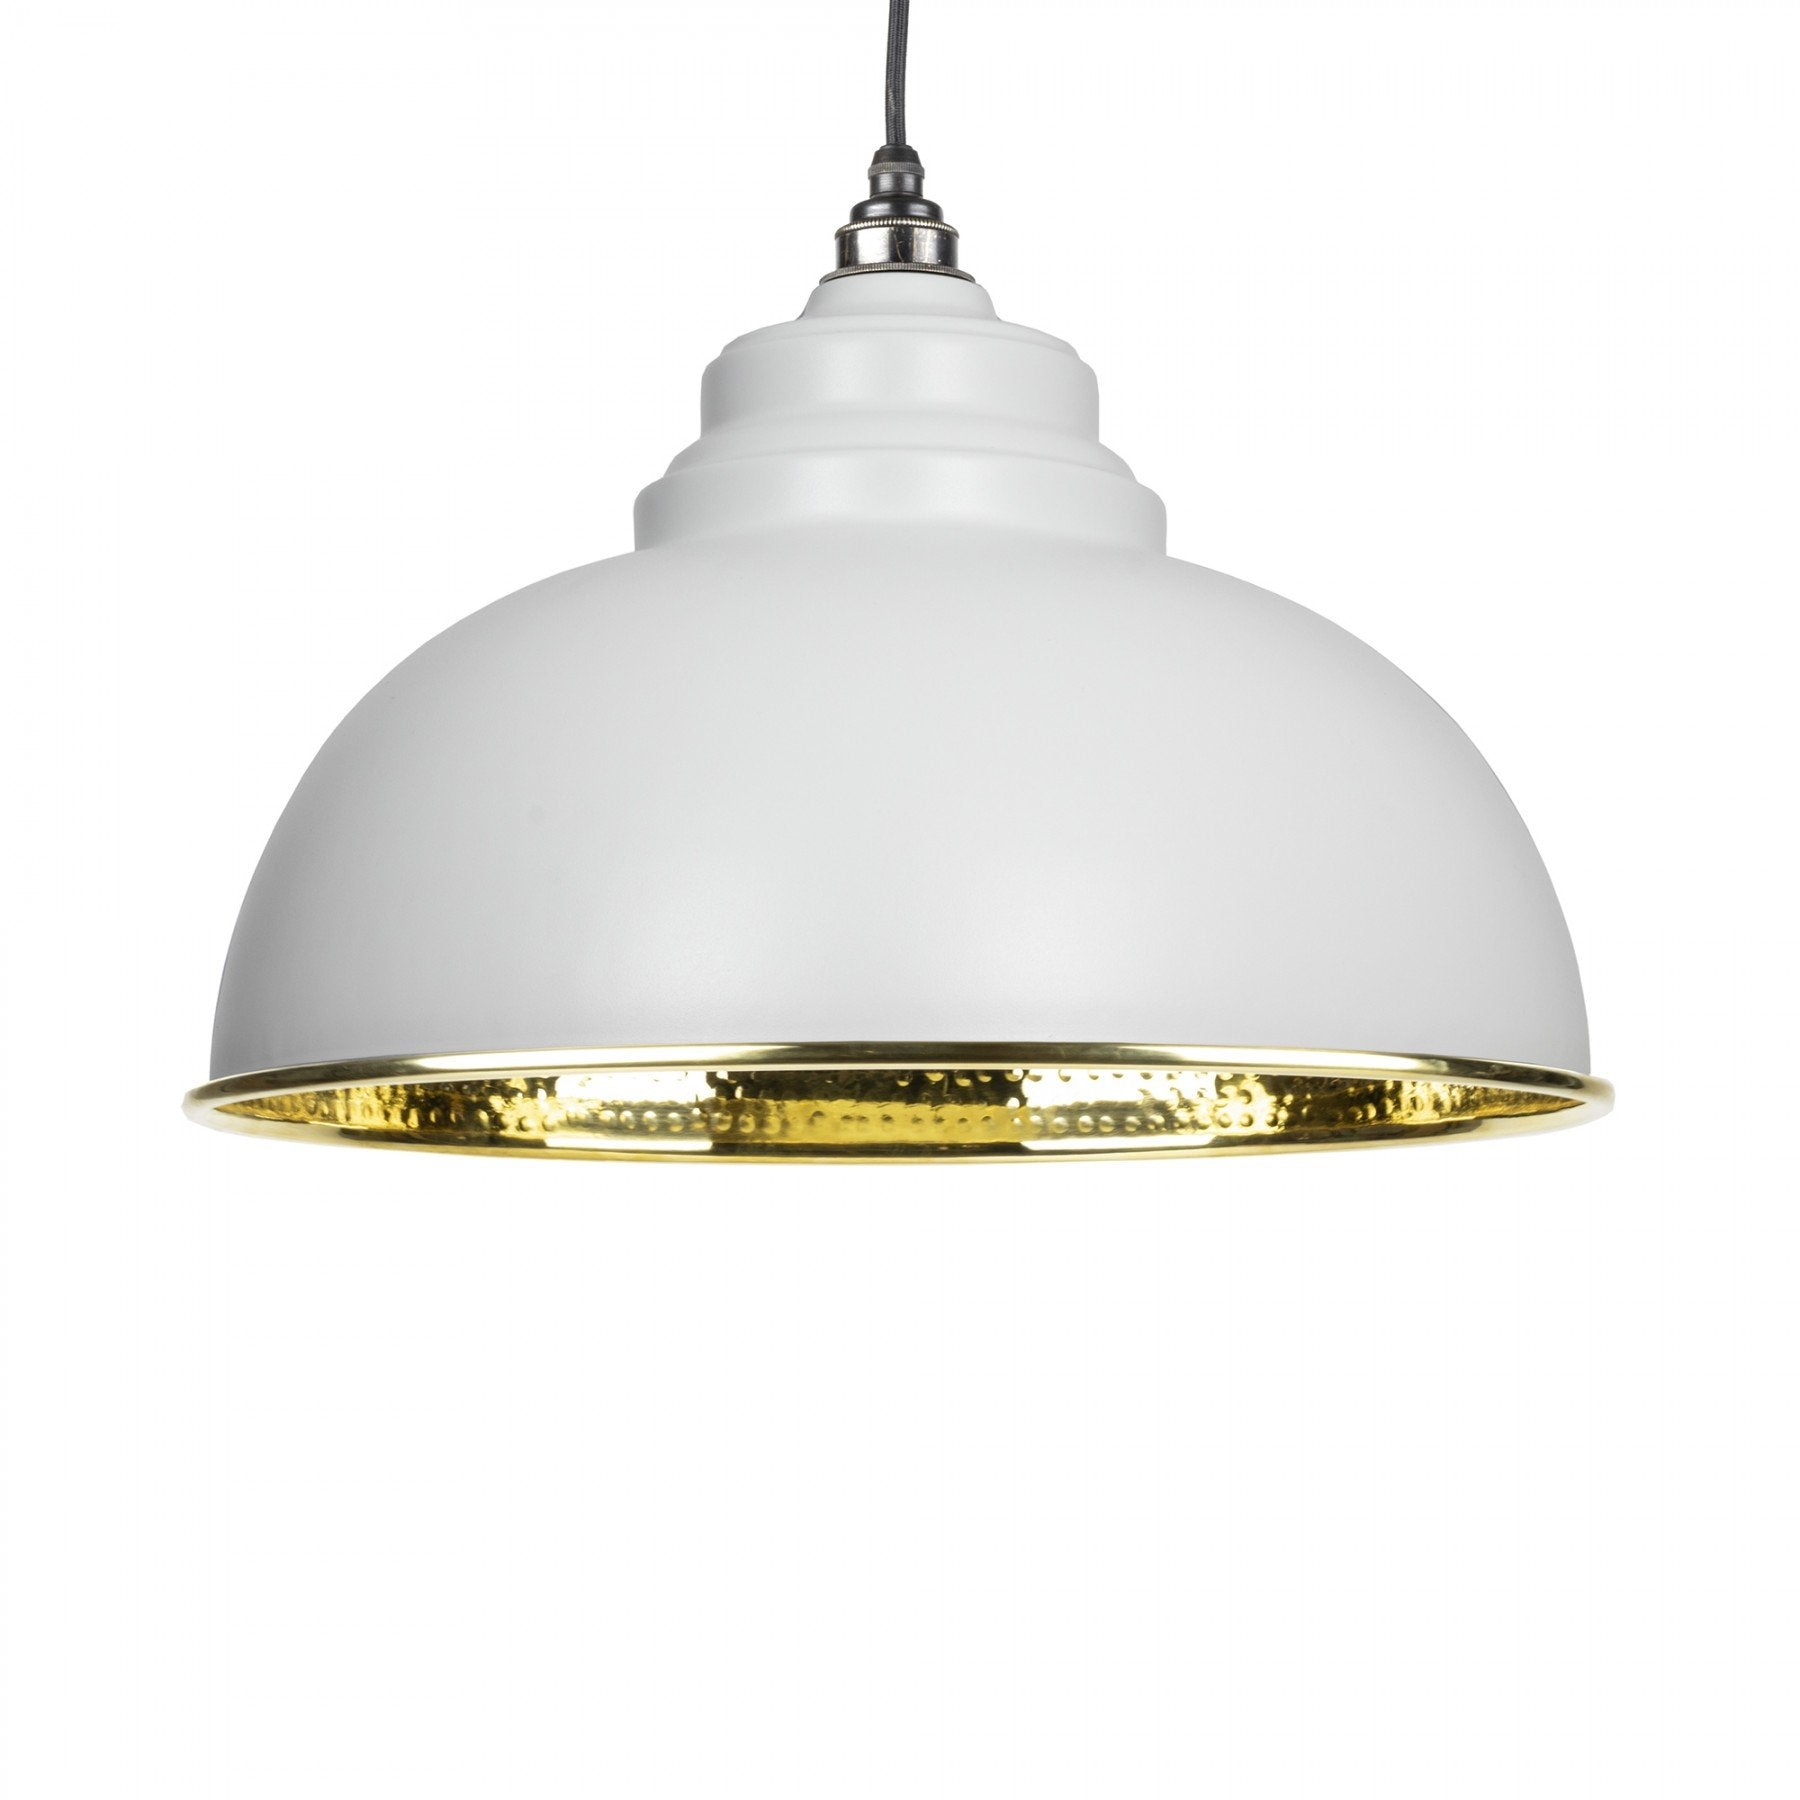 From The Anvil Light Grey & Hammered Brass Interior Harborne Pendant - No.42 Interiors